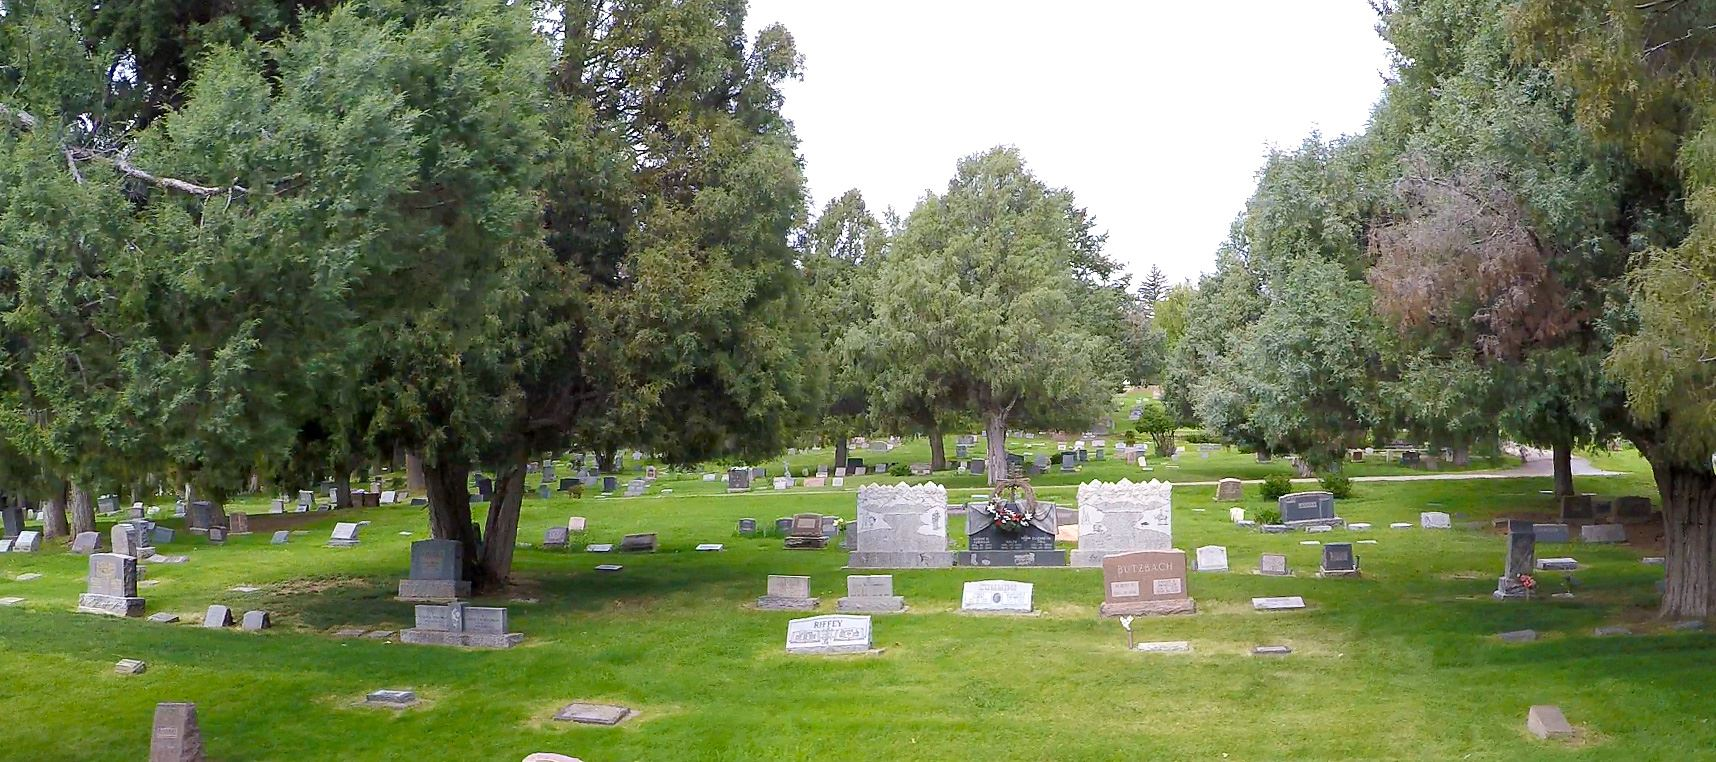 Photo of trees and headstones at Greenmount Cemetery